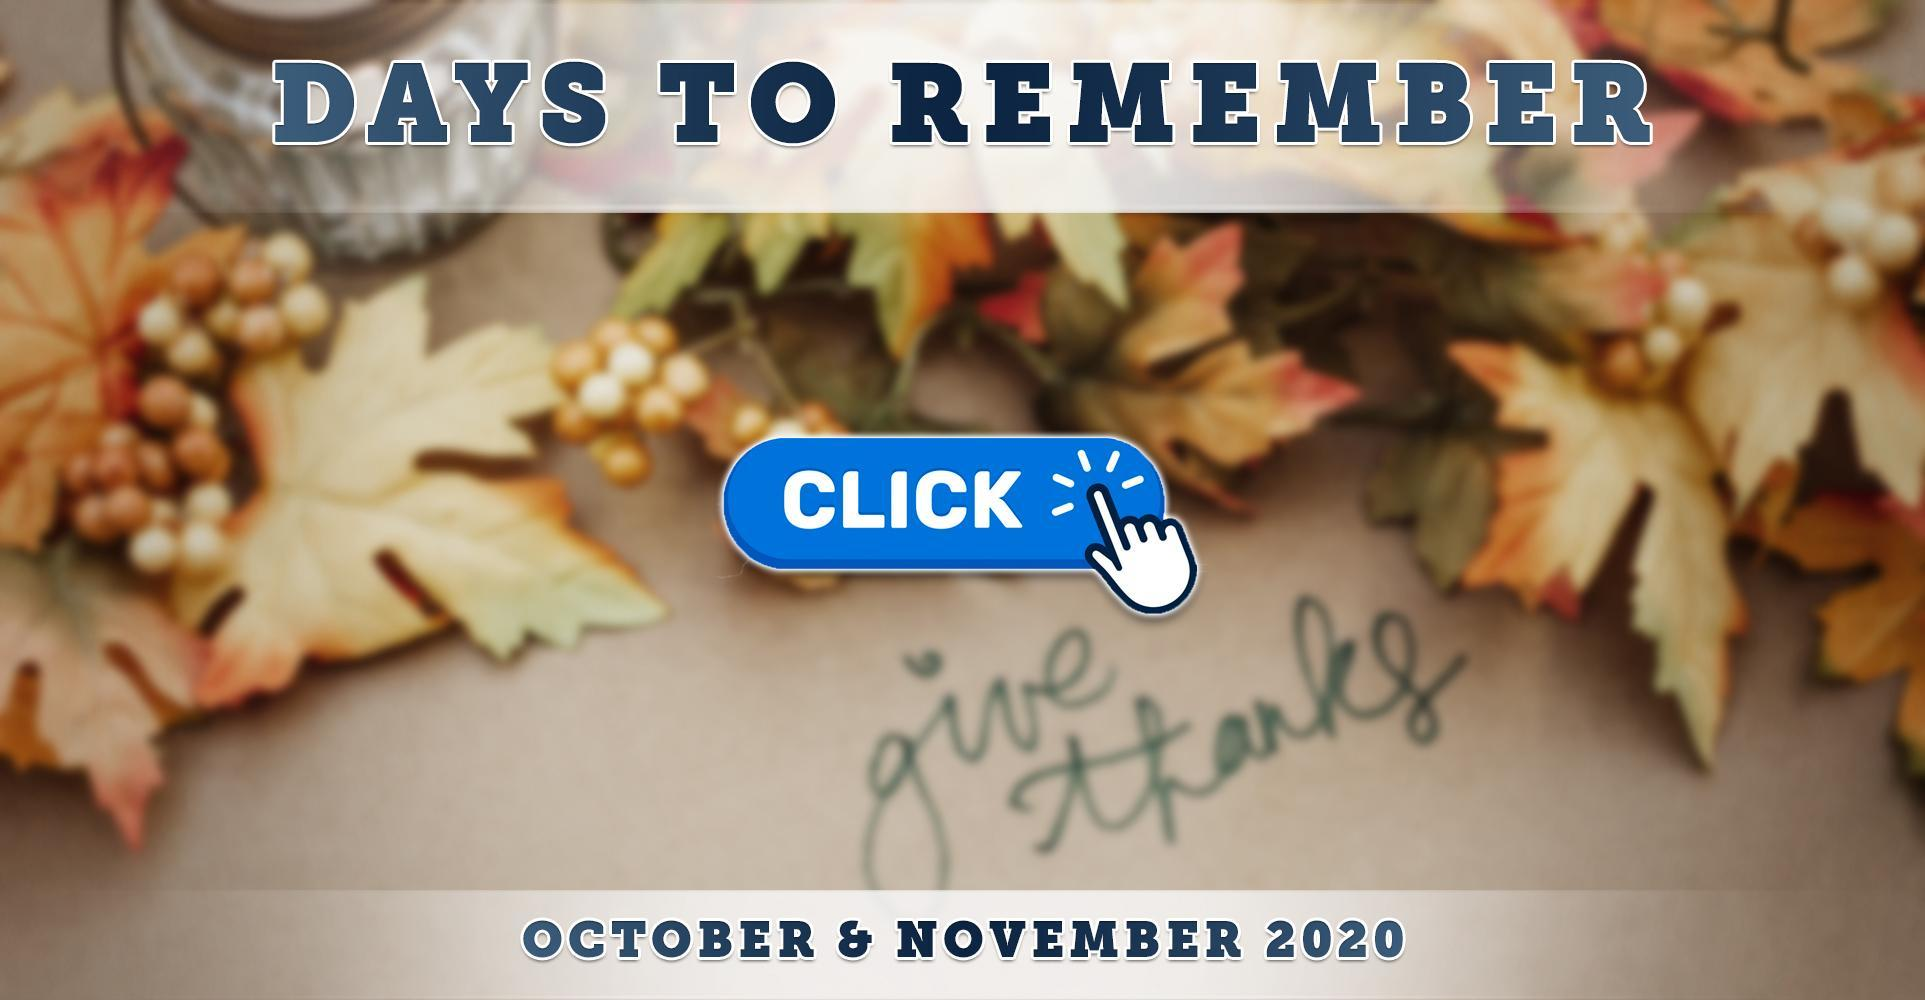 Fall Dates to Remember: October & November 2020